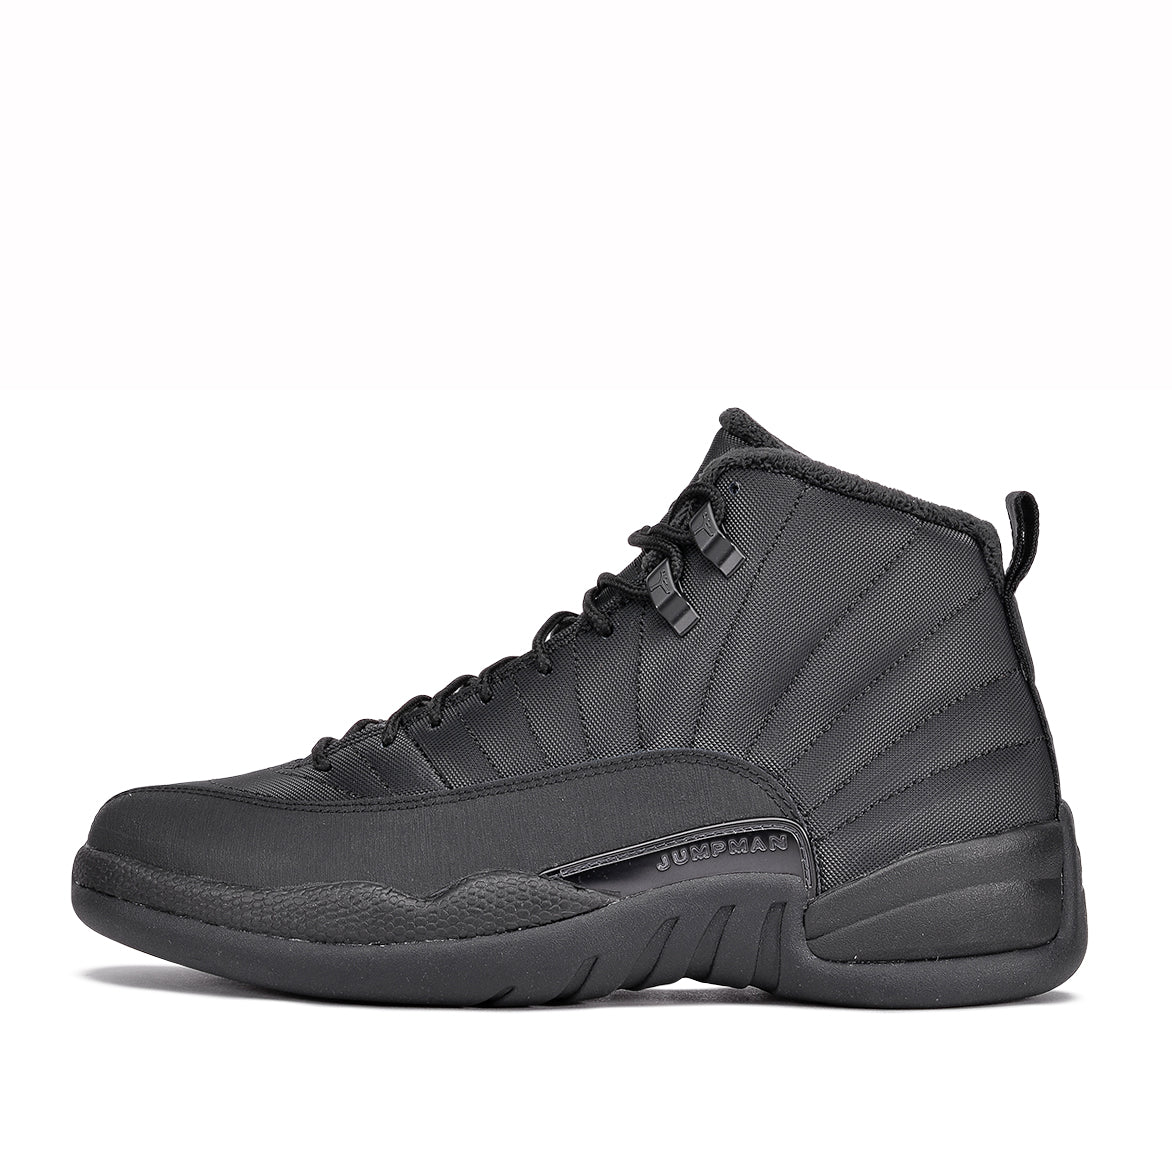 6ab61c92b706f4 AIR JORDAN 12 RETRO WINTERIZED